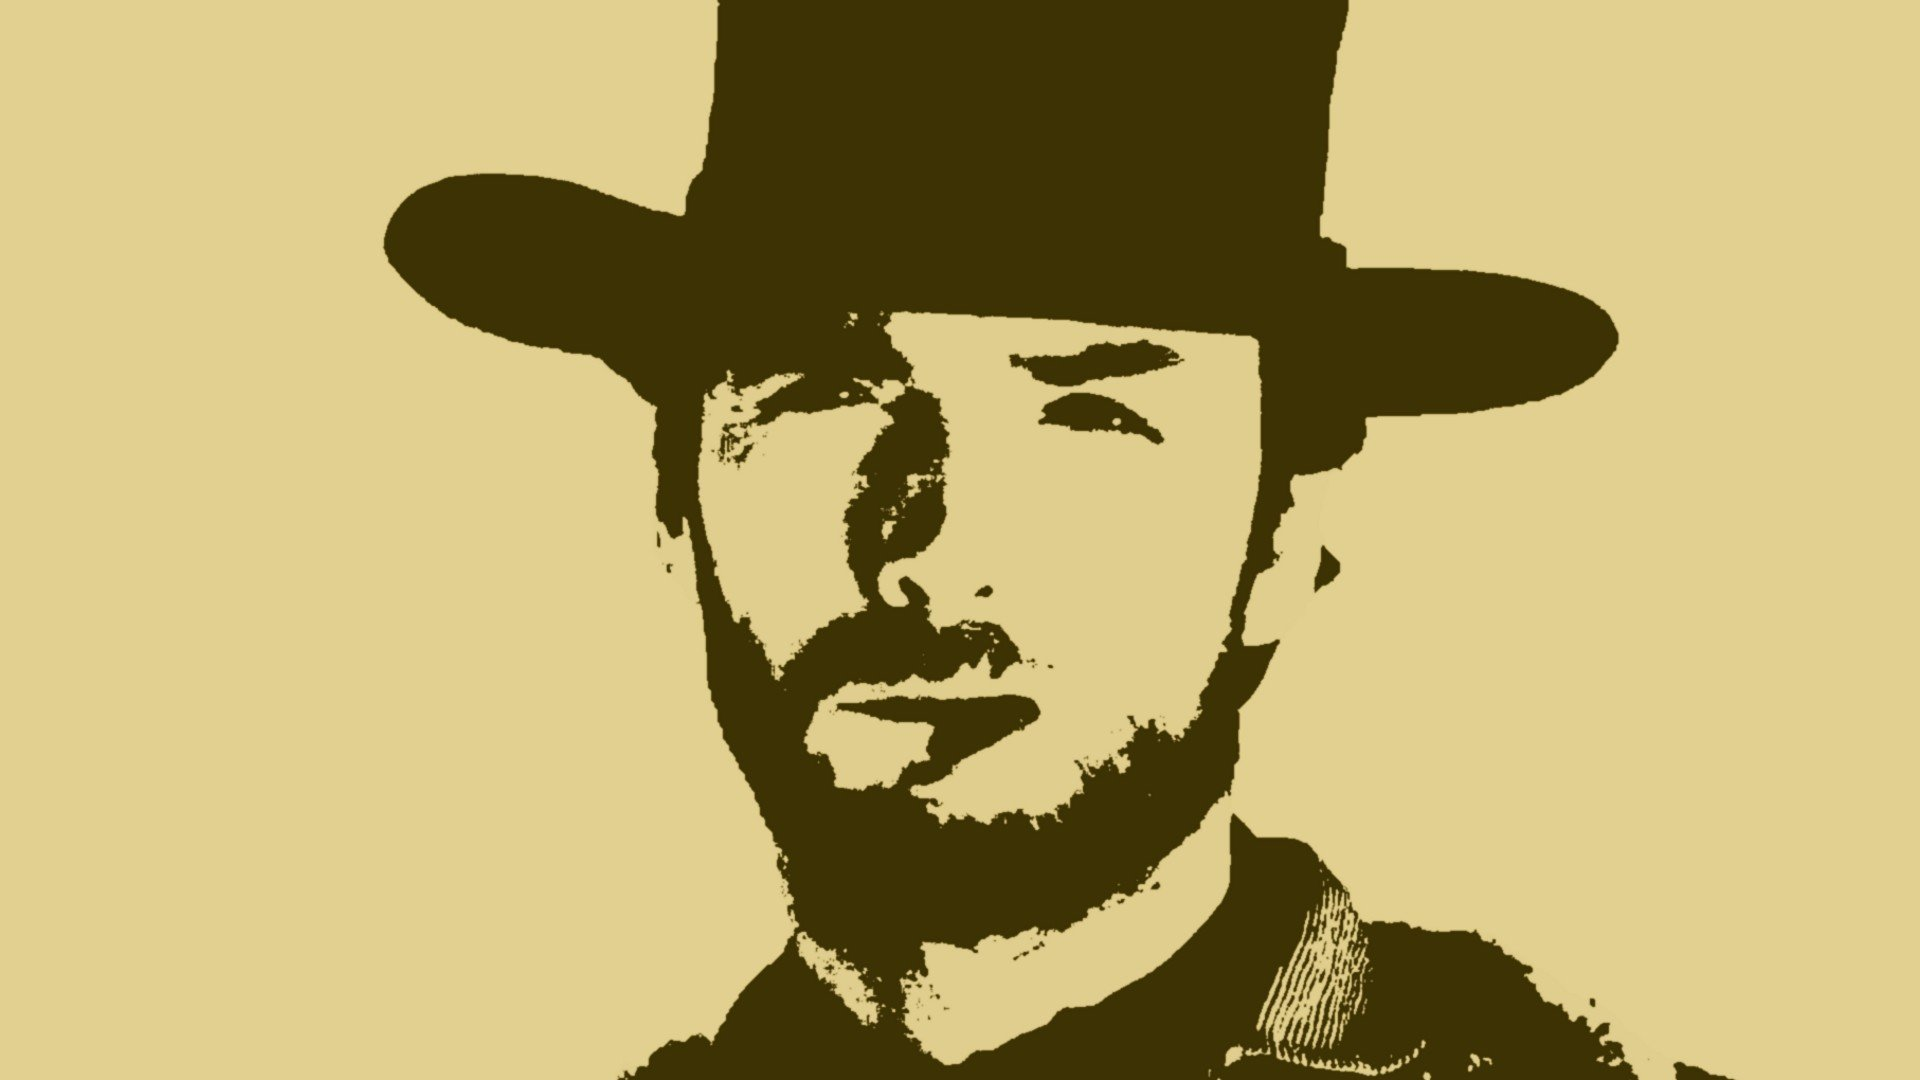 Free A Fistful Of Dollars high quality background ID 456004 for 1080p  computer e6255163926e